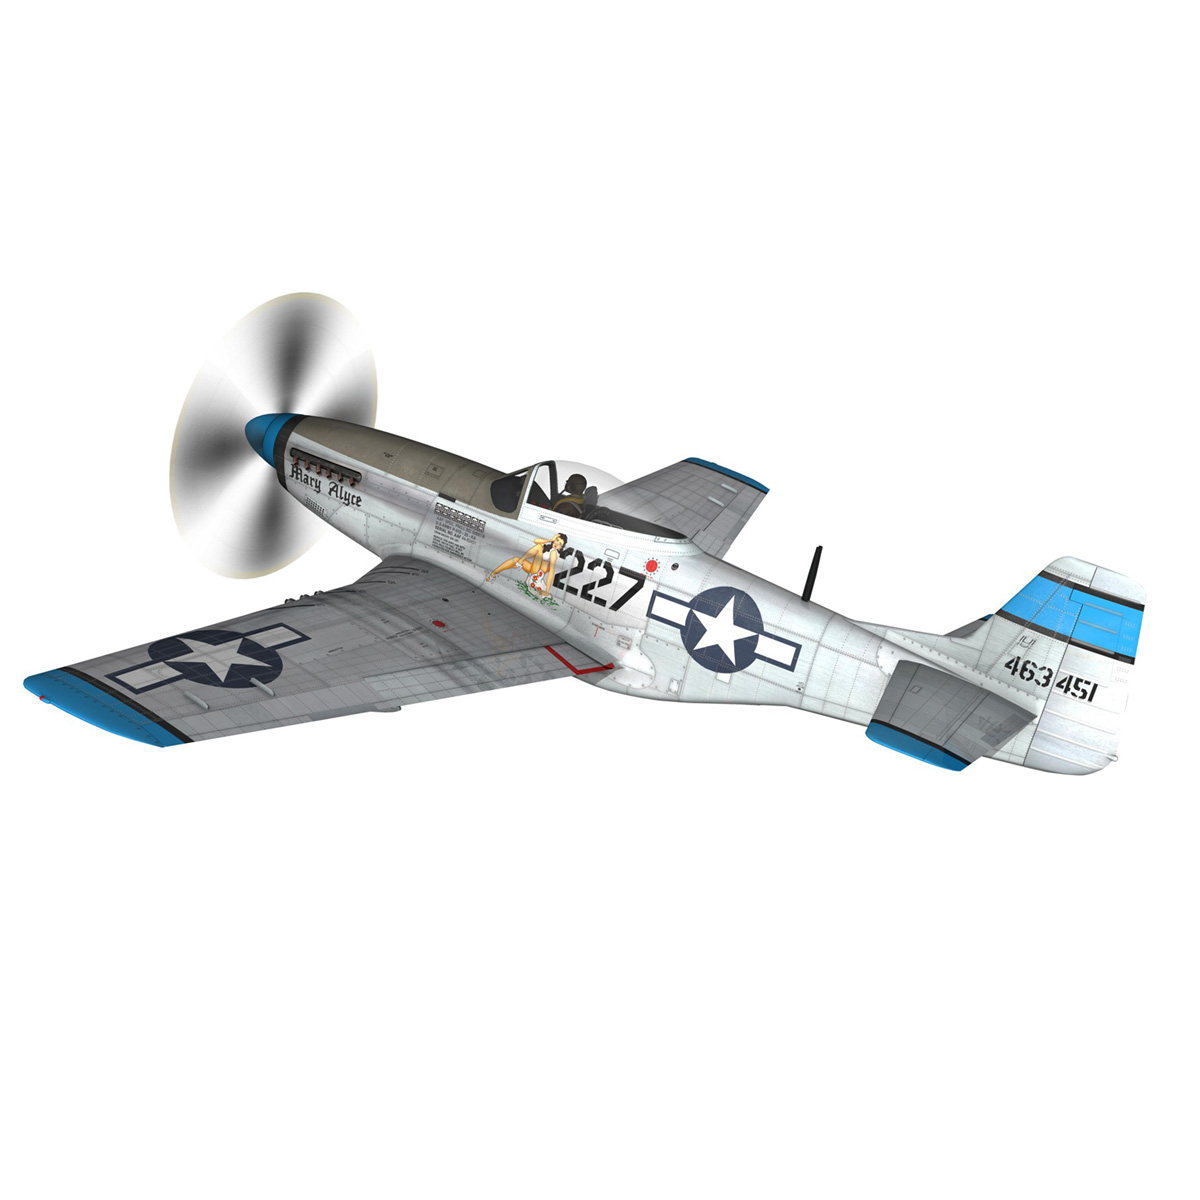 north american p-51d – mustang – mary alyce 3d model 3ds fbx c4d lwo obj 267570